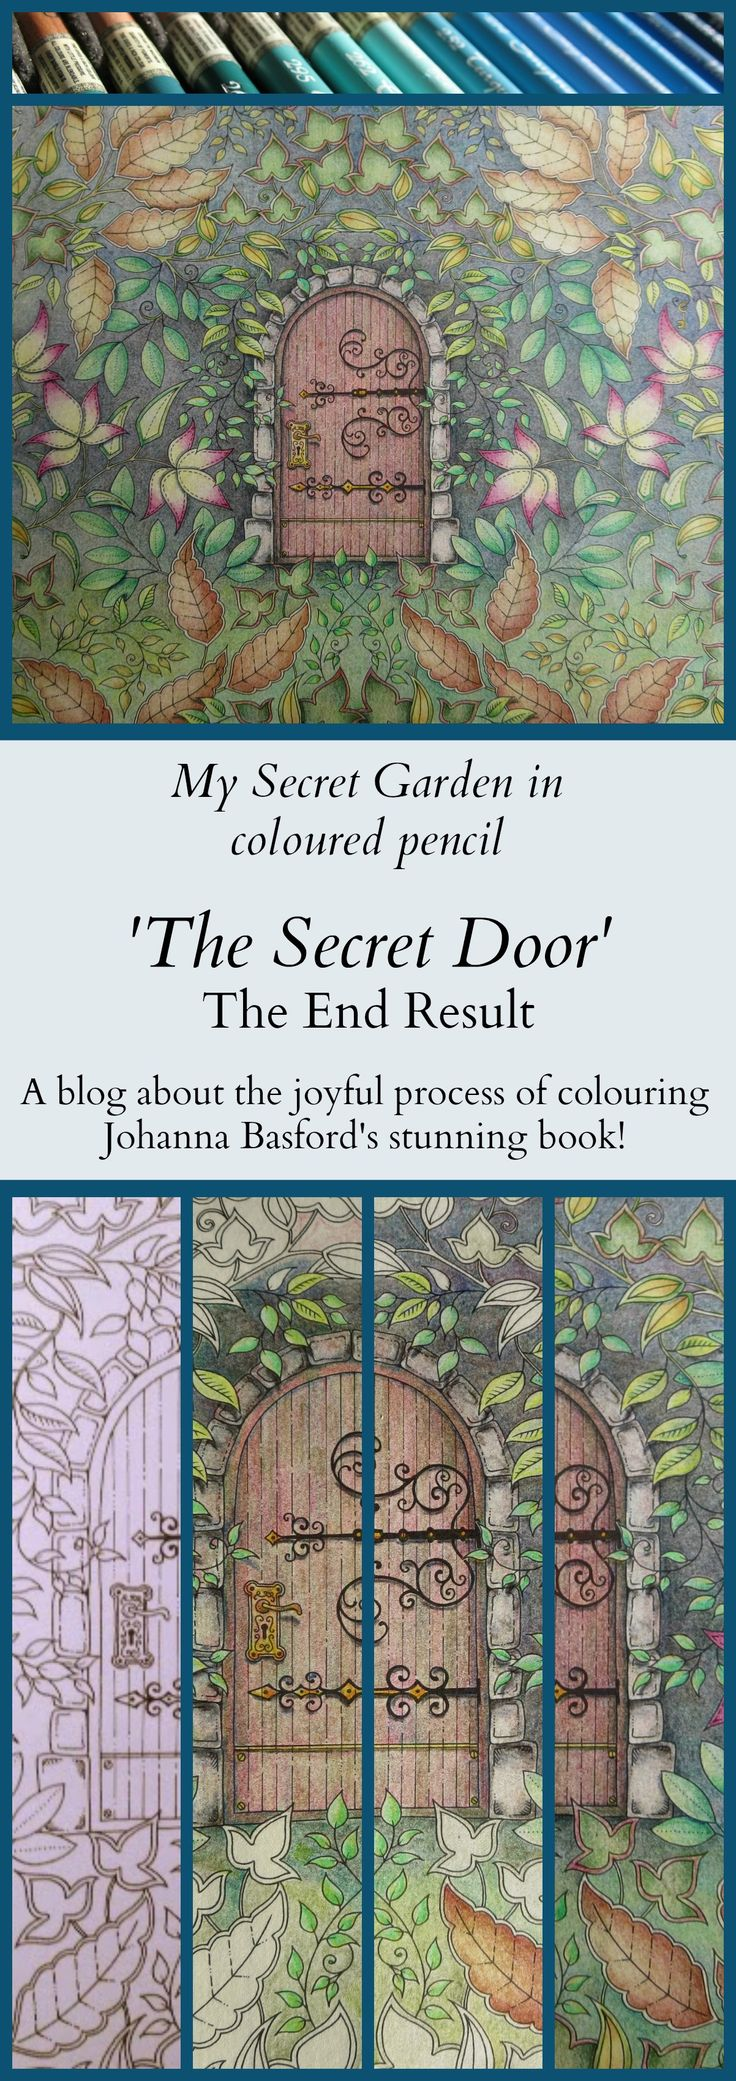 The secret garden coloring book finished - I Finally Finished The Secret Door After Three Months Of Happy Colouring This